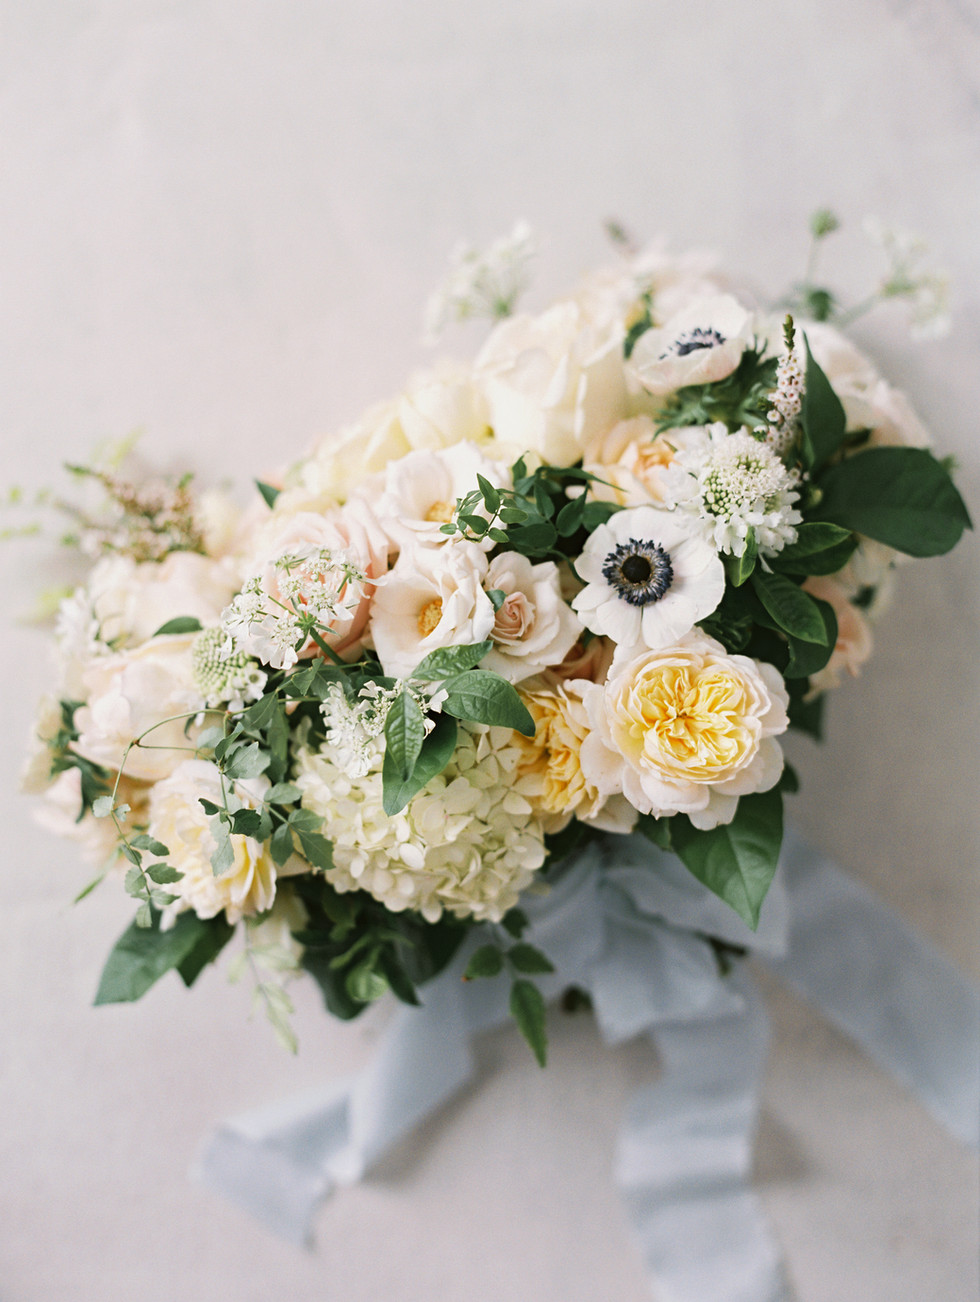 Garden-style bridal bouquet with roses, anemones, hydrangea, and lace flower. Photo: Gaby Jeter